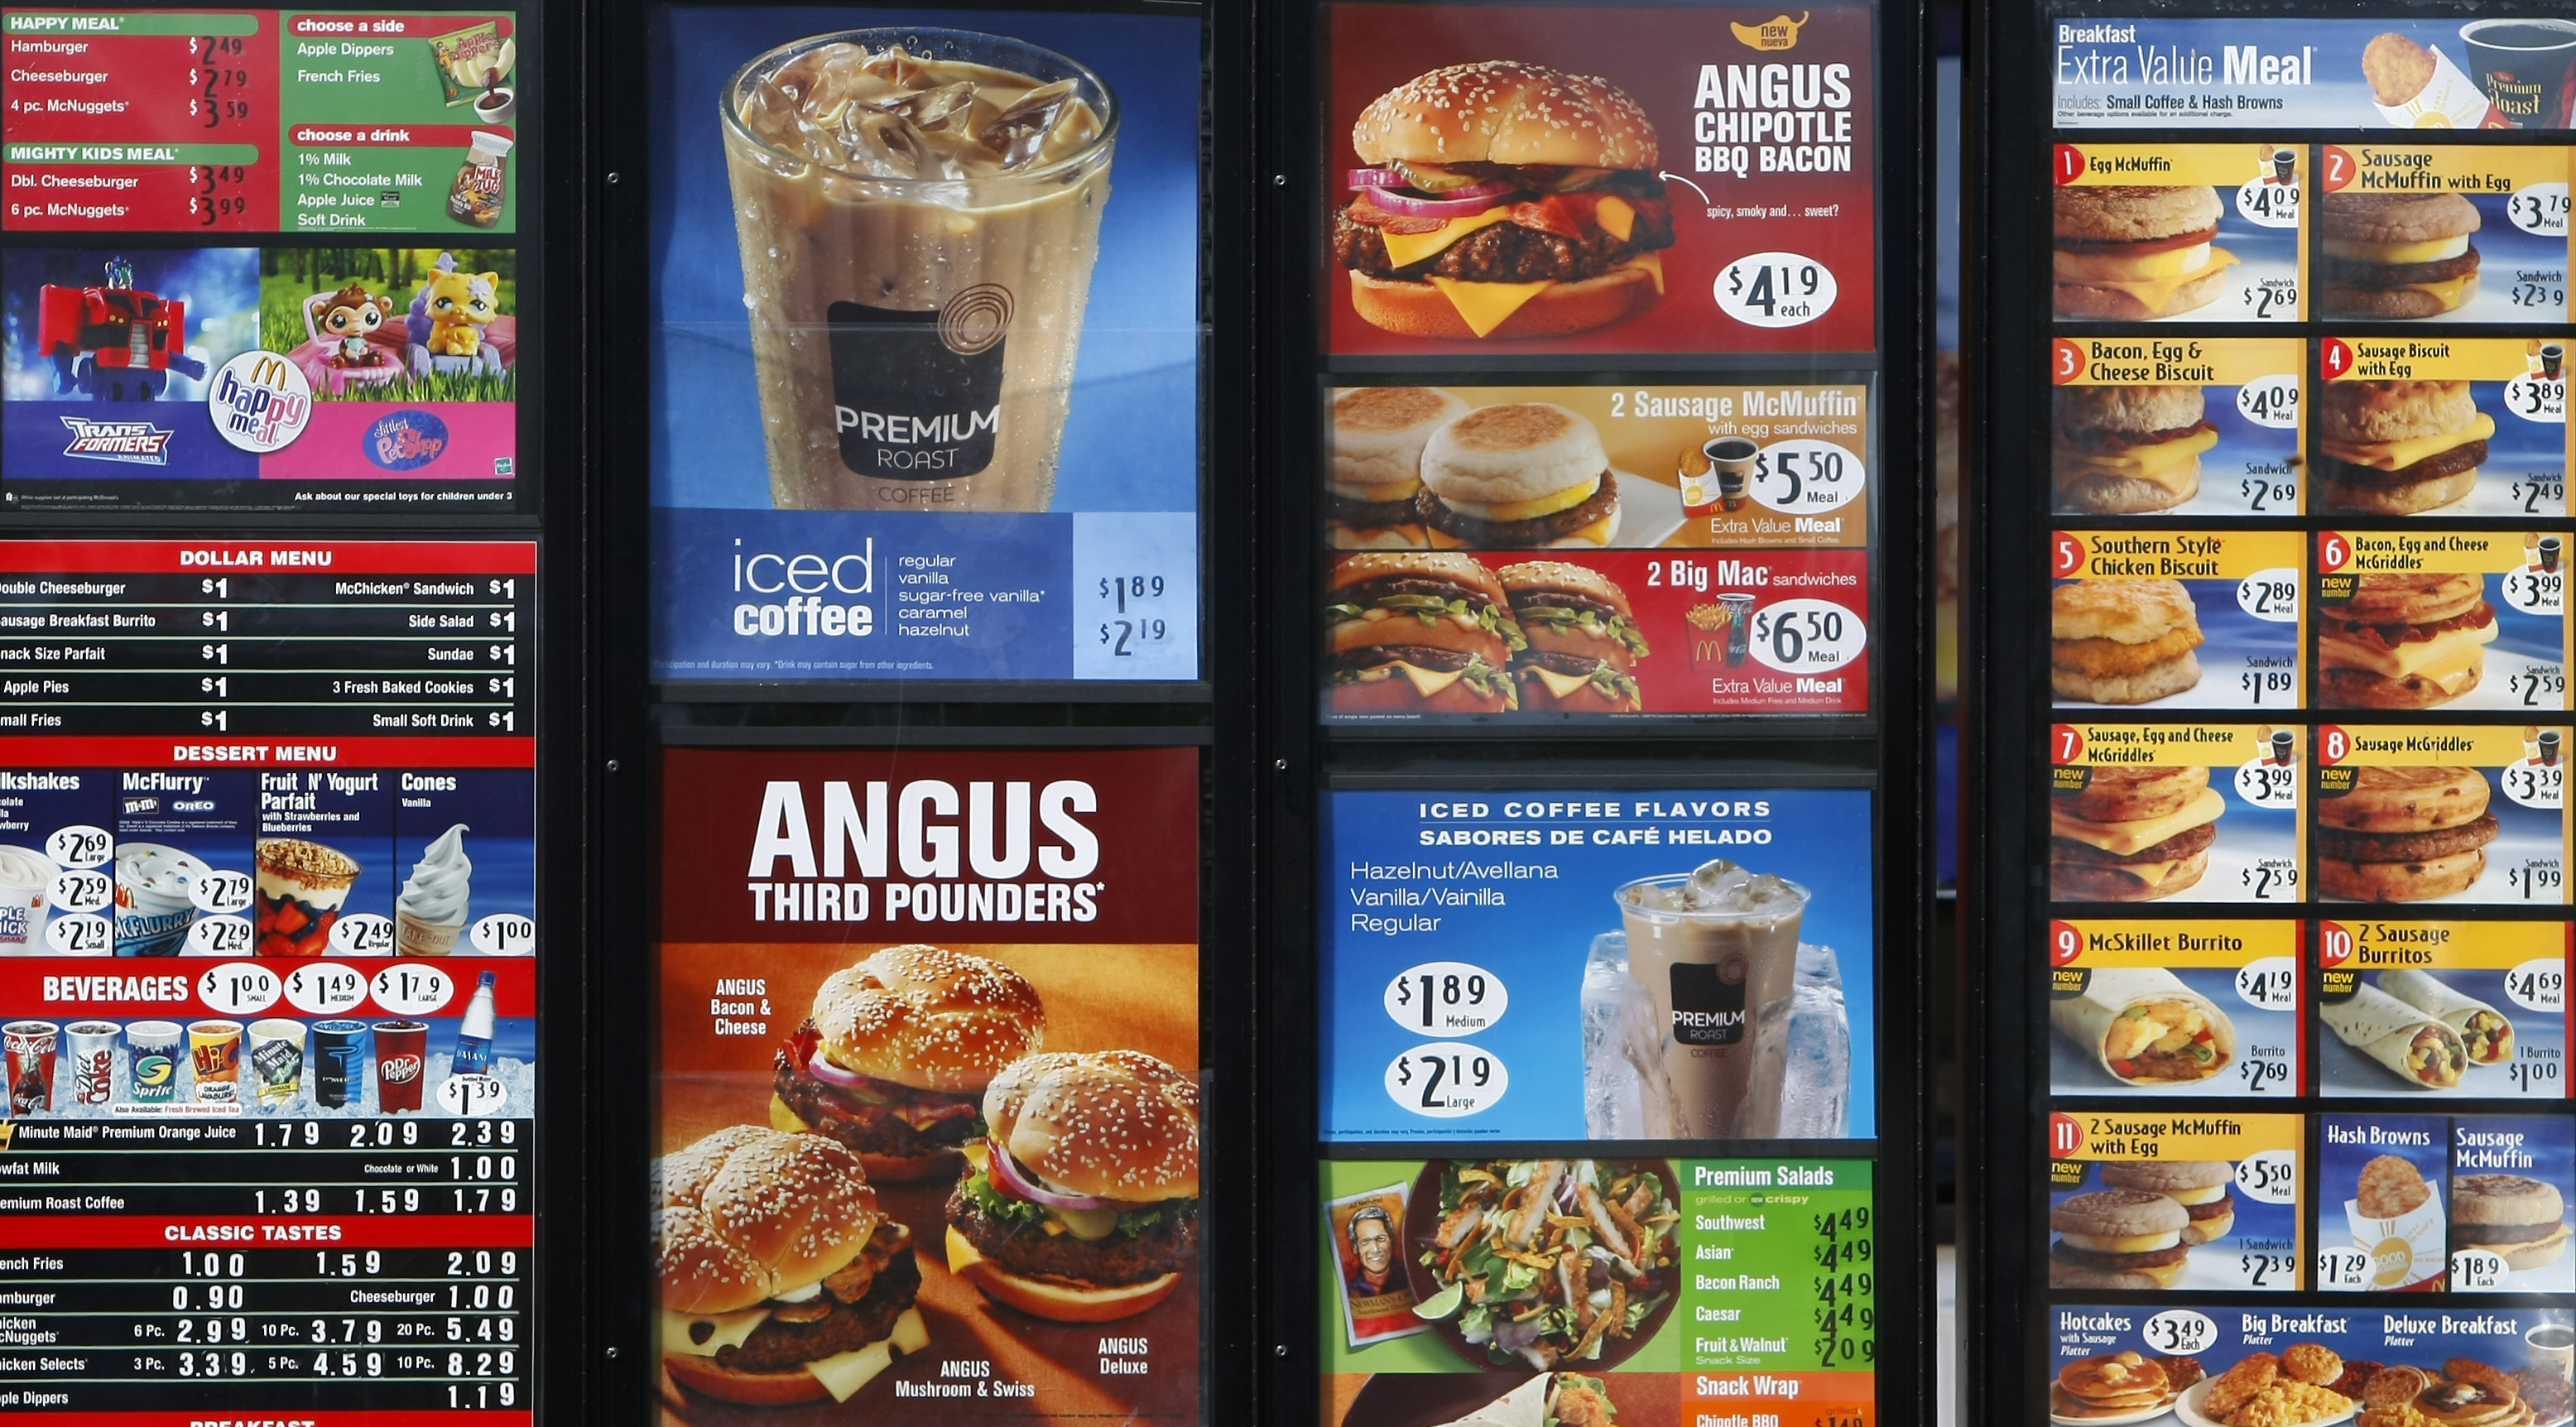 Fast Food Calorie Labeling Fails To Motivate Consumers To